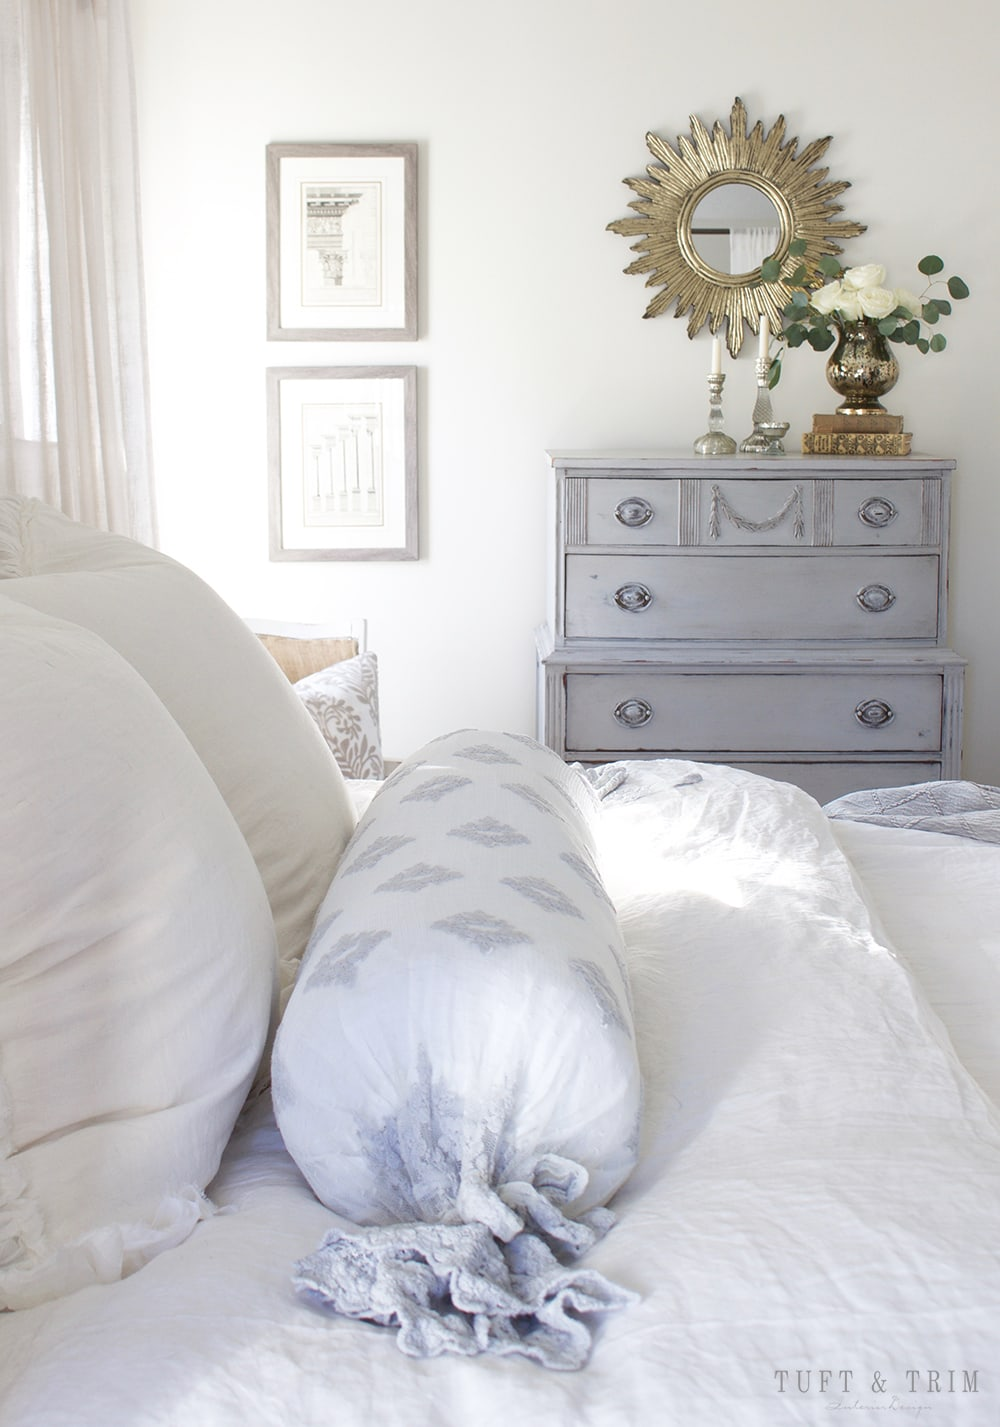 French Country Fridays 218: Savoring the Charm of French Inspired Decor